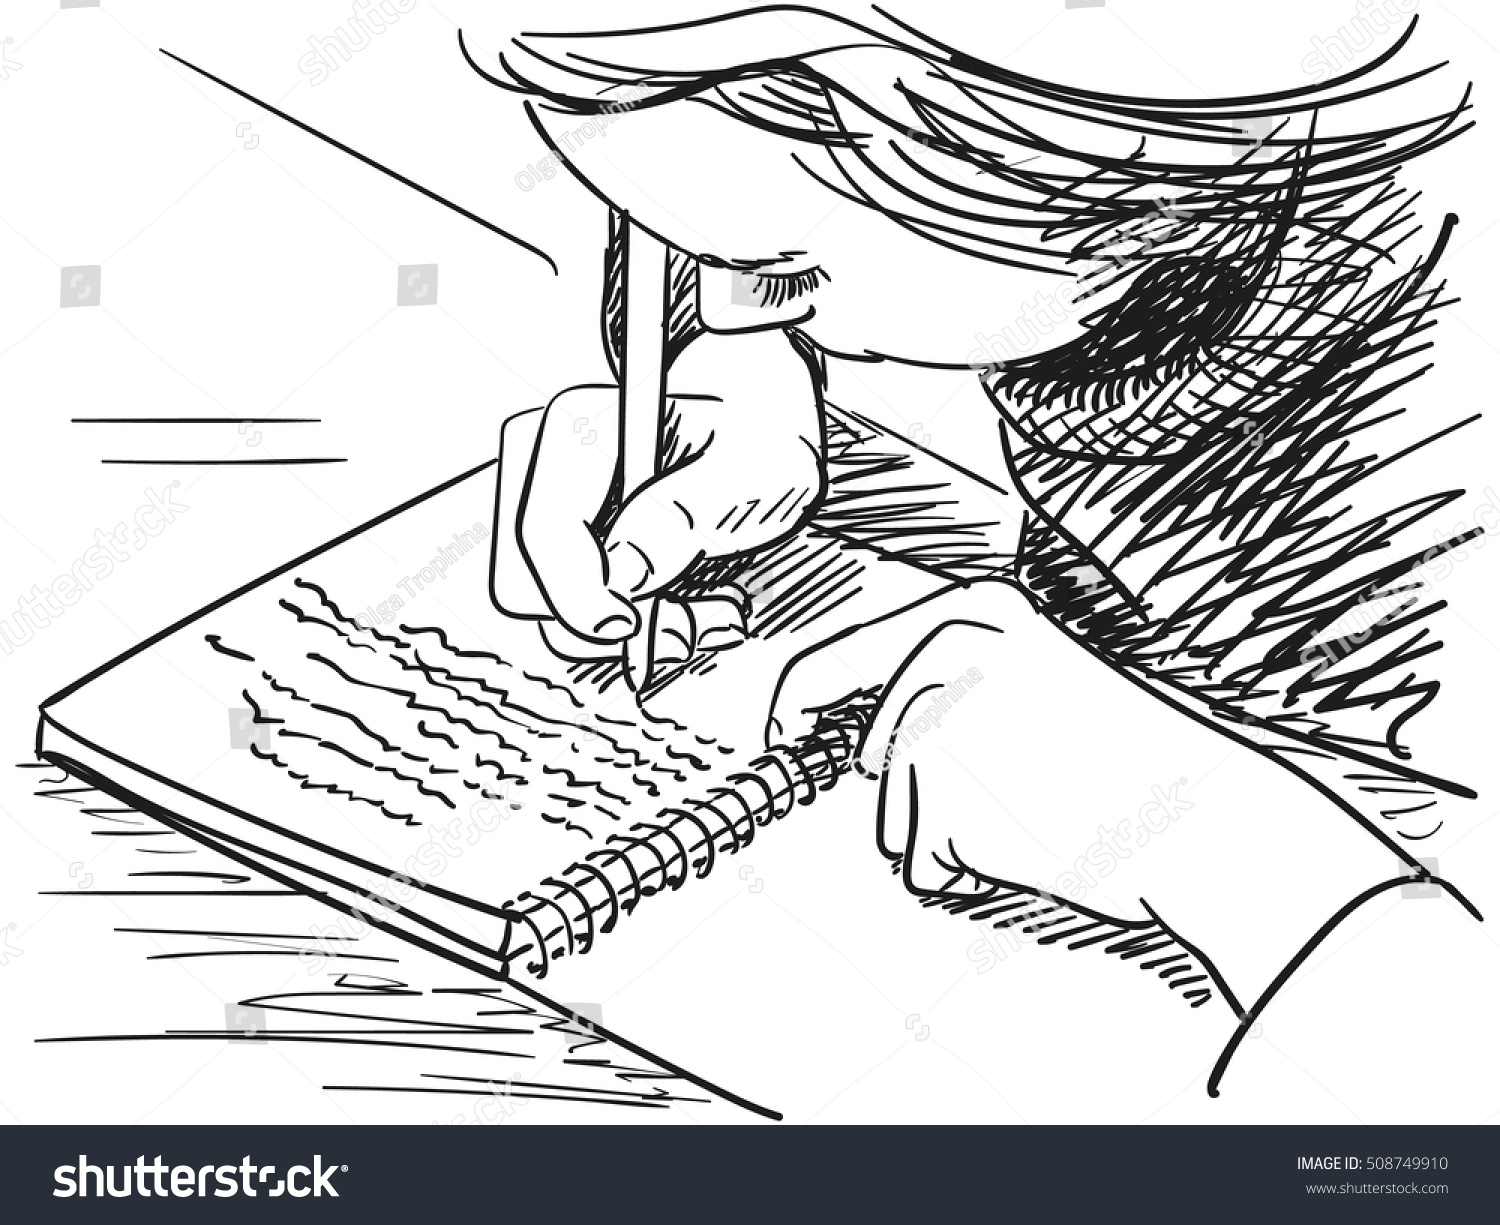 Notebook And Pen Sketch Stock Vector Art More Images Of: Sketch Girl Writing Notebook Hand Drawn Stock Vector